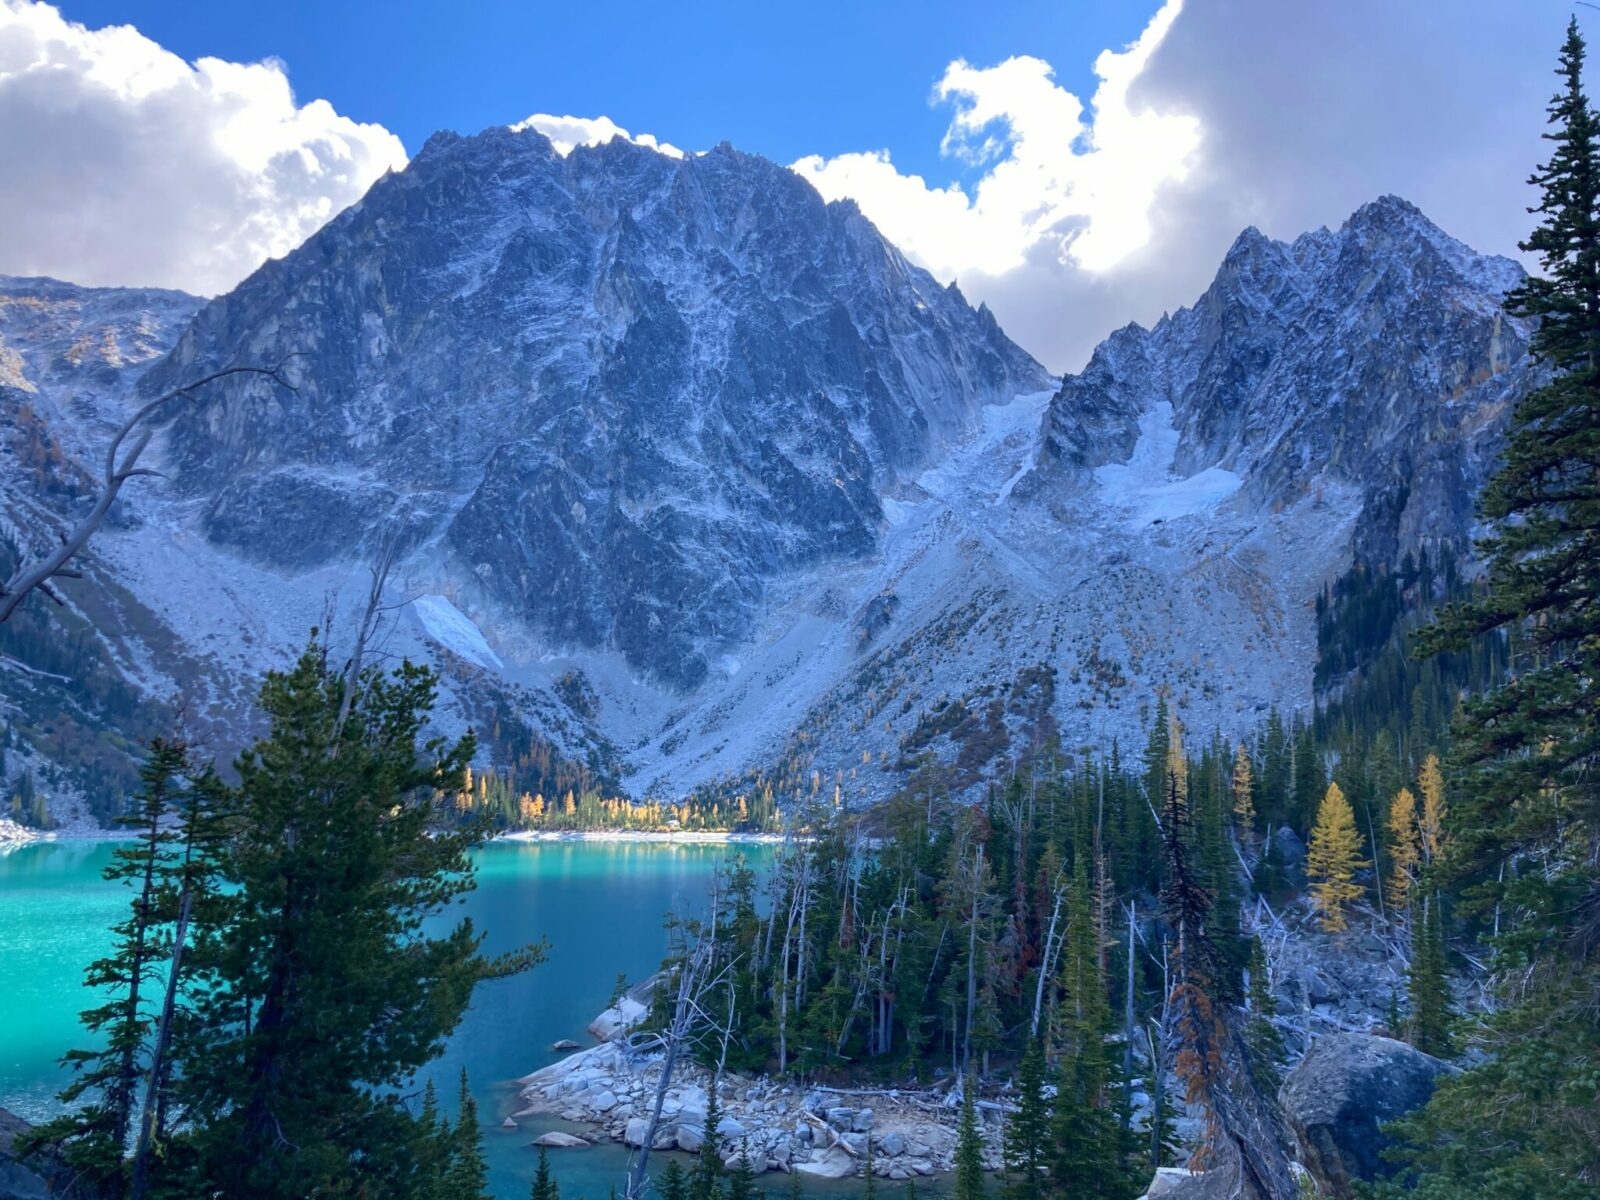 Colchuck Lake is a turquoise blue alpine lake surrounded by granite rock formations and subalpine firs. There are high mountains around it with a dusting of new snow, some golden larch trees and two glaciers hanging between mountains